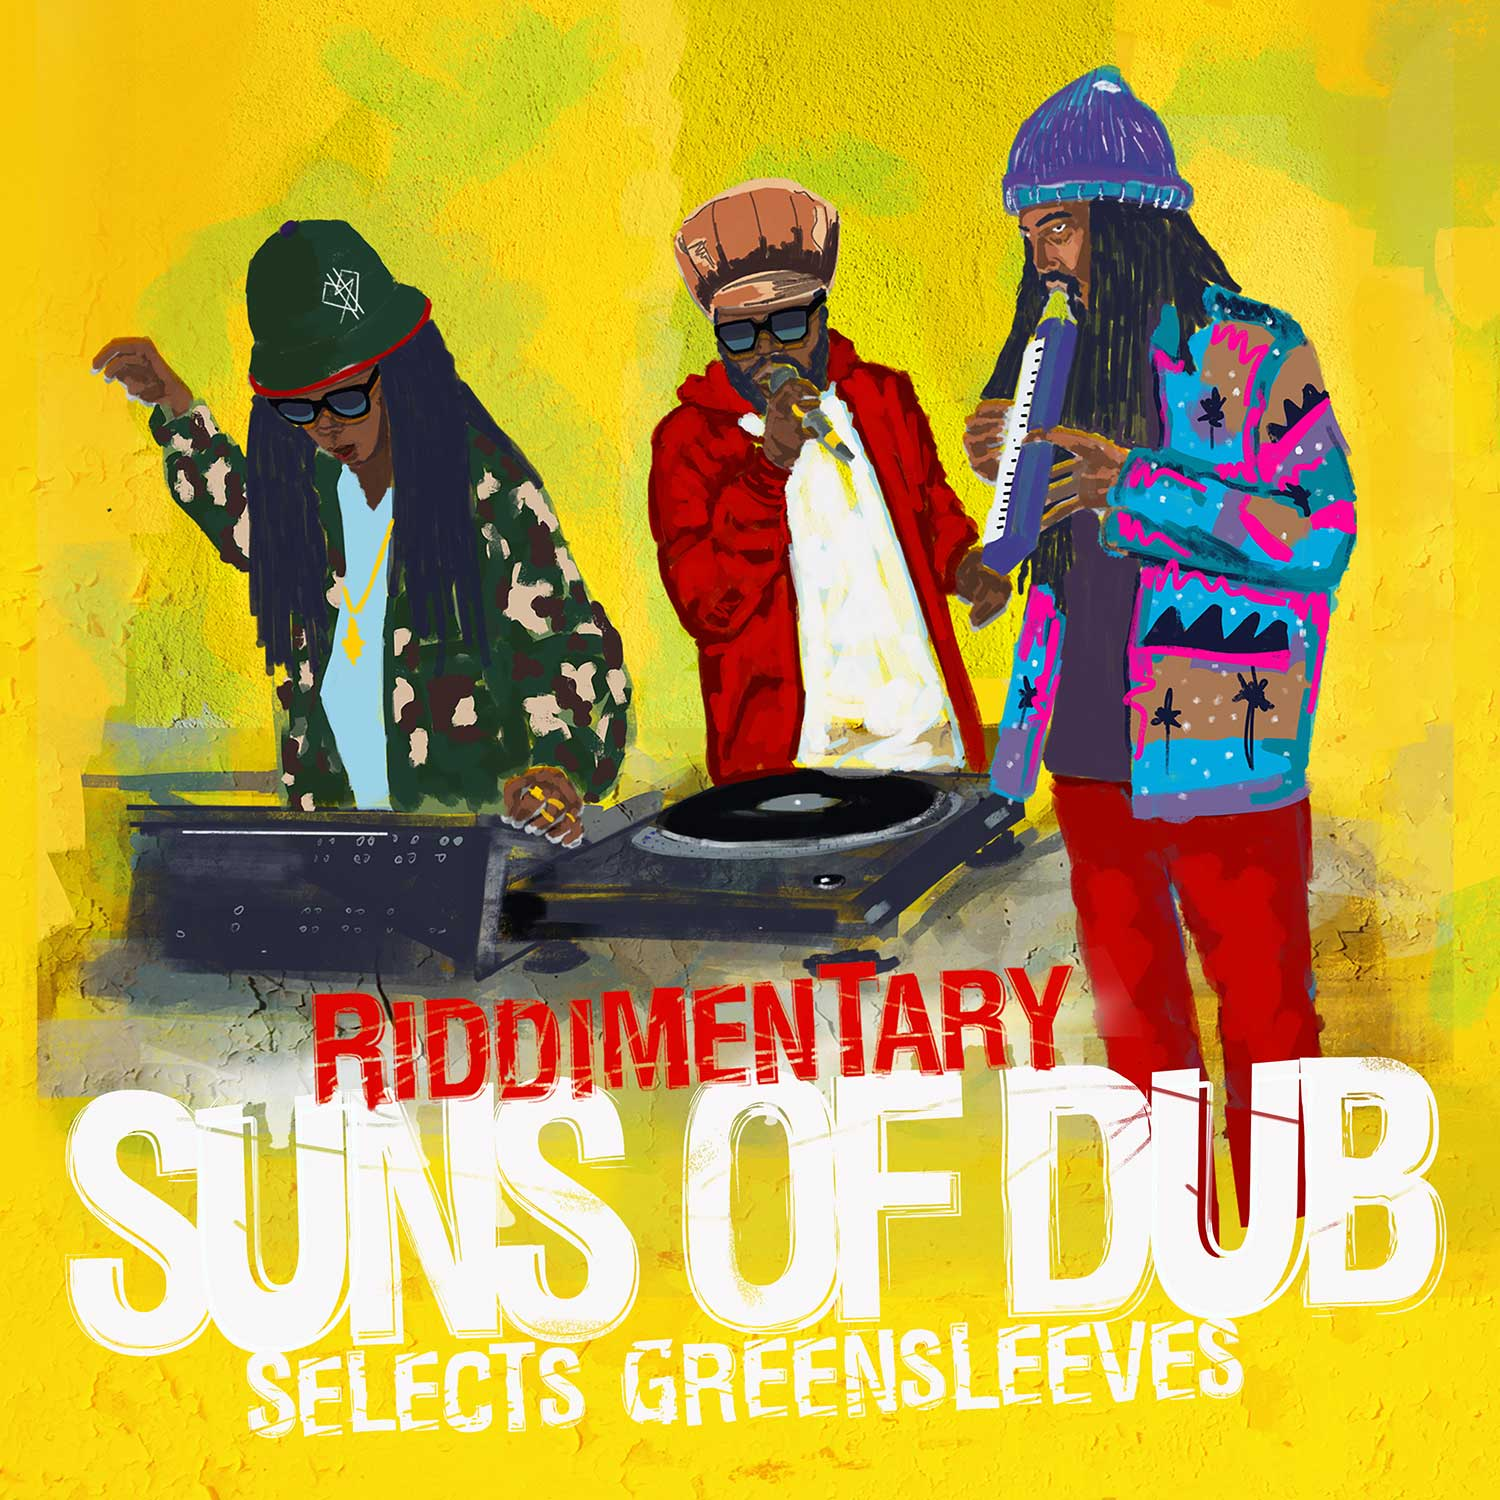 Riddimentary: Suns Of Dub Selects Greensleeves – Suns of Dub